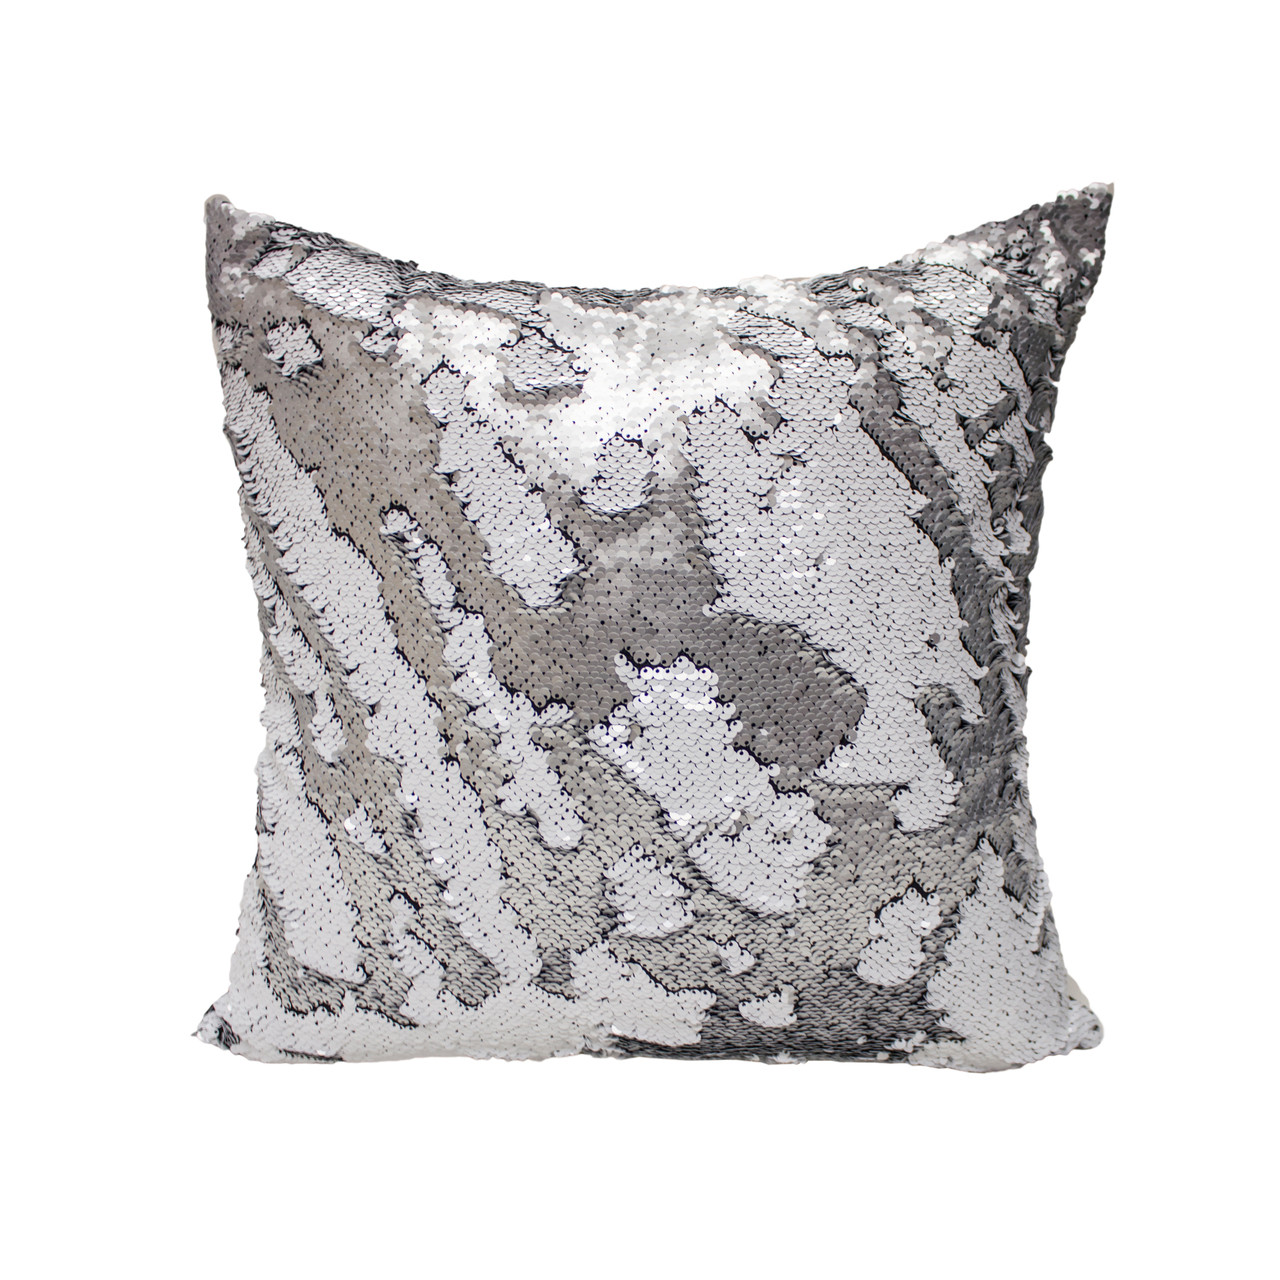 Decorative Sequin Throw Pillow 18x18 Inch, Comfortable Fill For ...